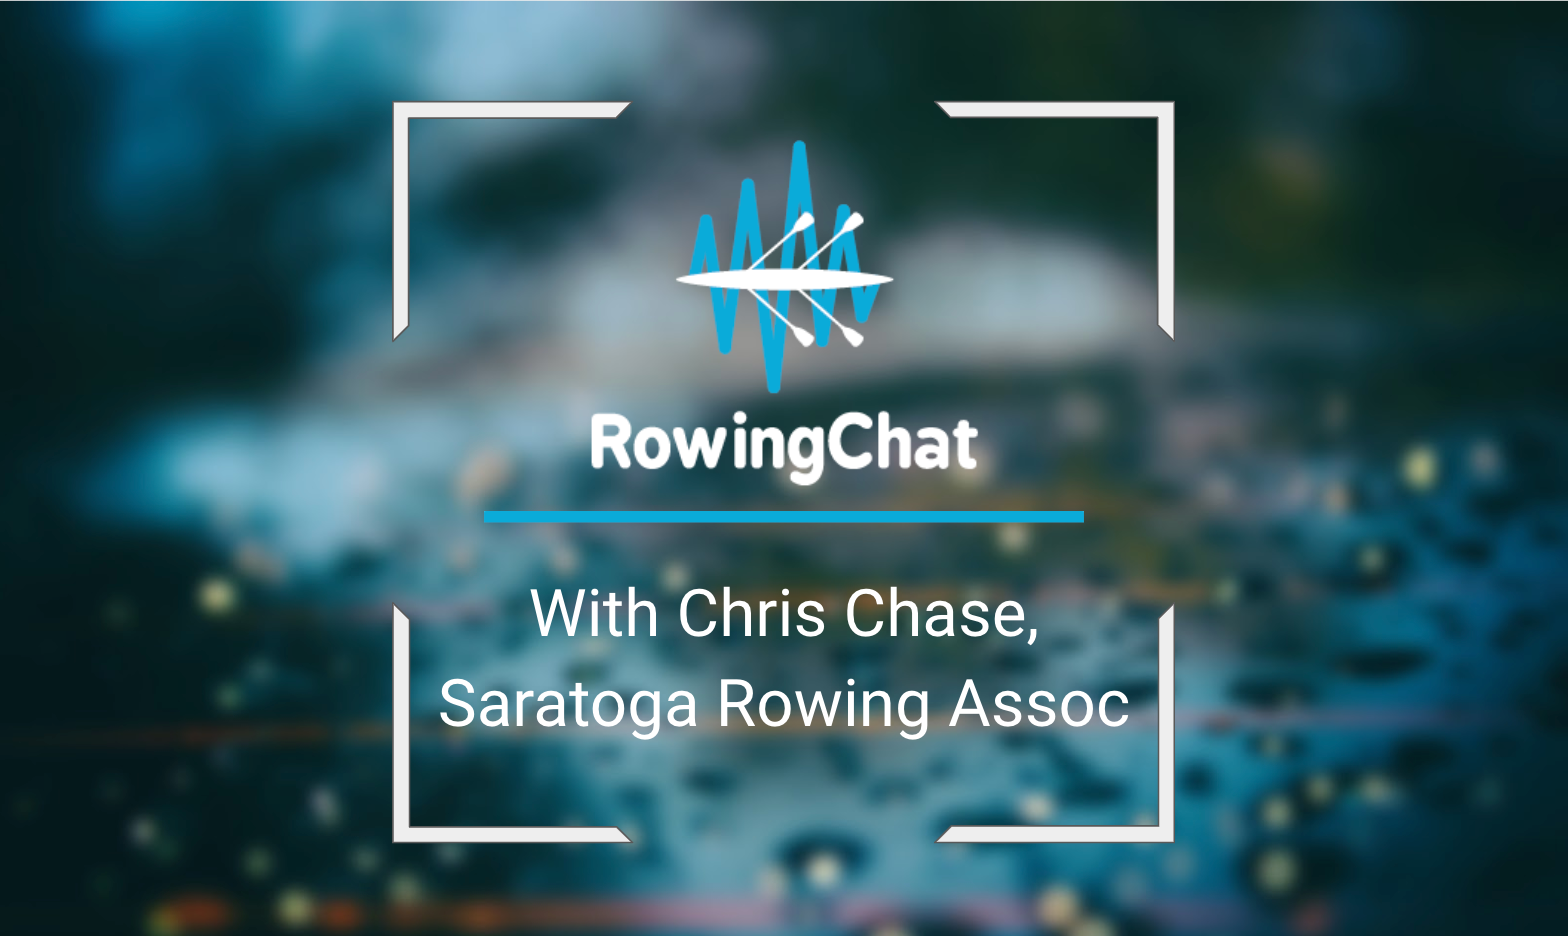 Saratoga Rowing Association, Chris Chase Rowing Coach